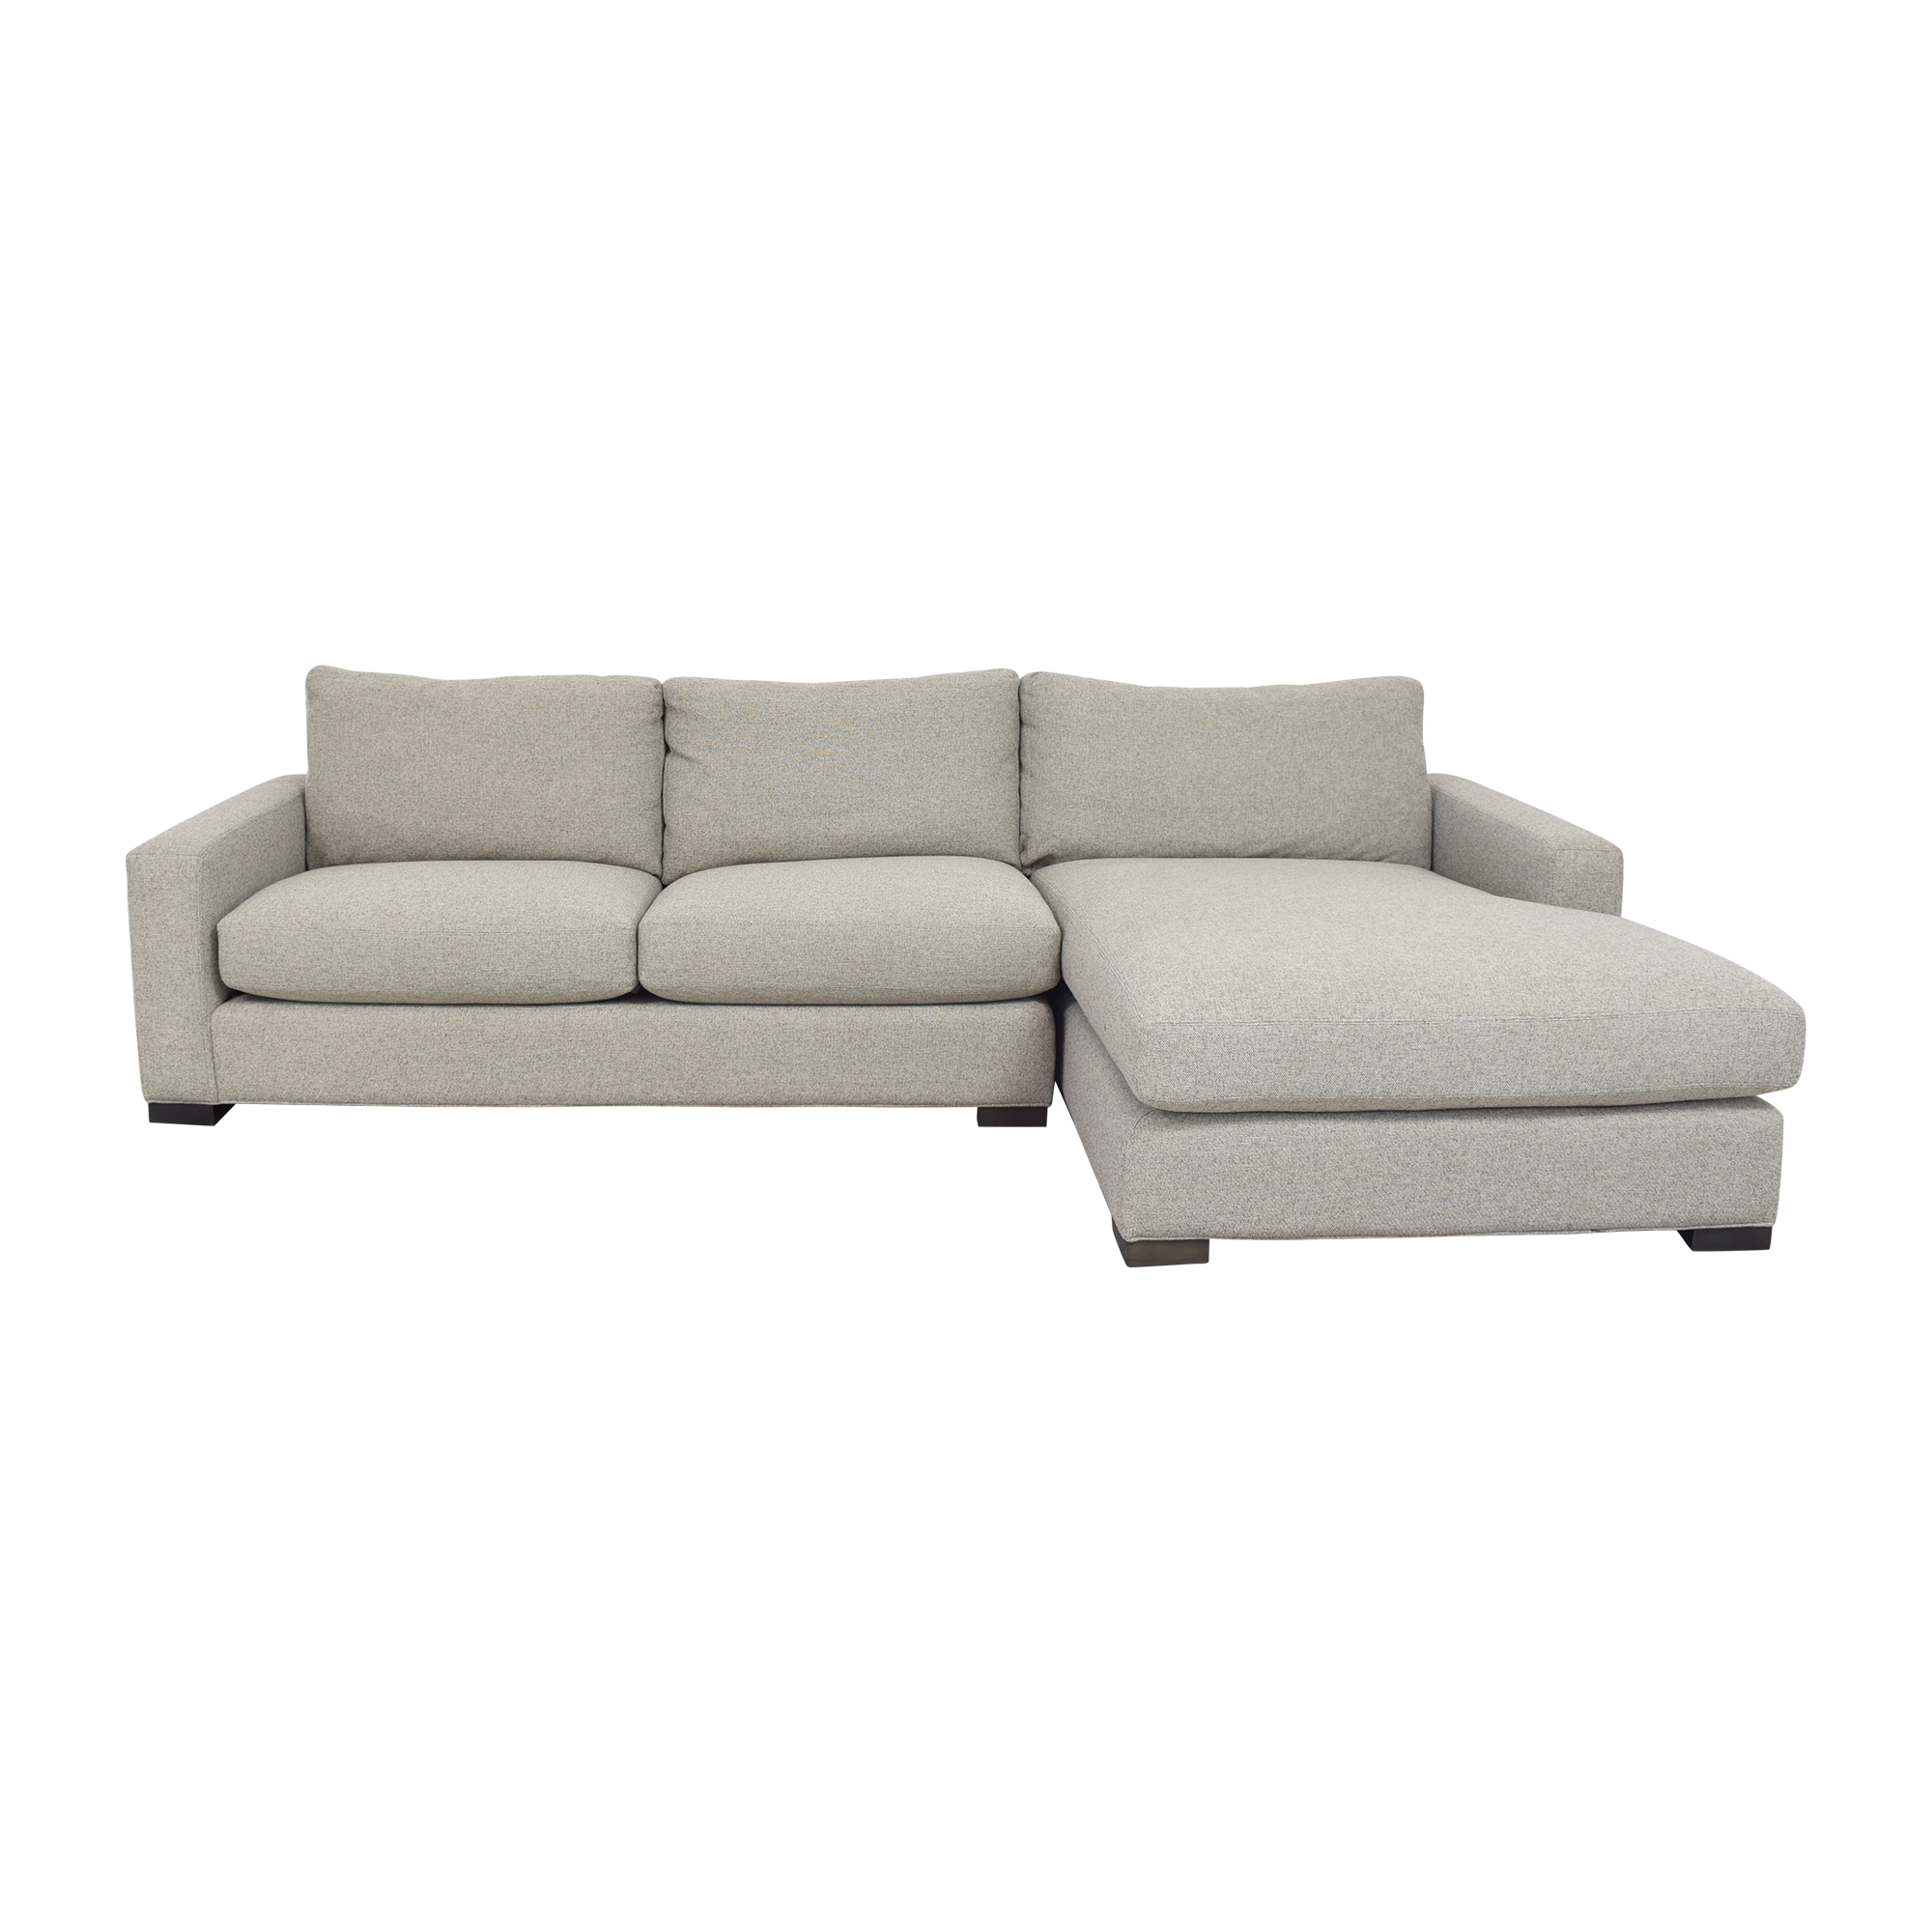 Room & Board Room & Board Metro Chaise Sectional Sofa and Ottoman dimensions